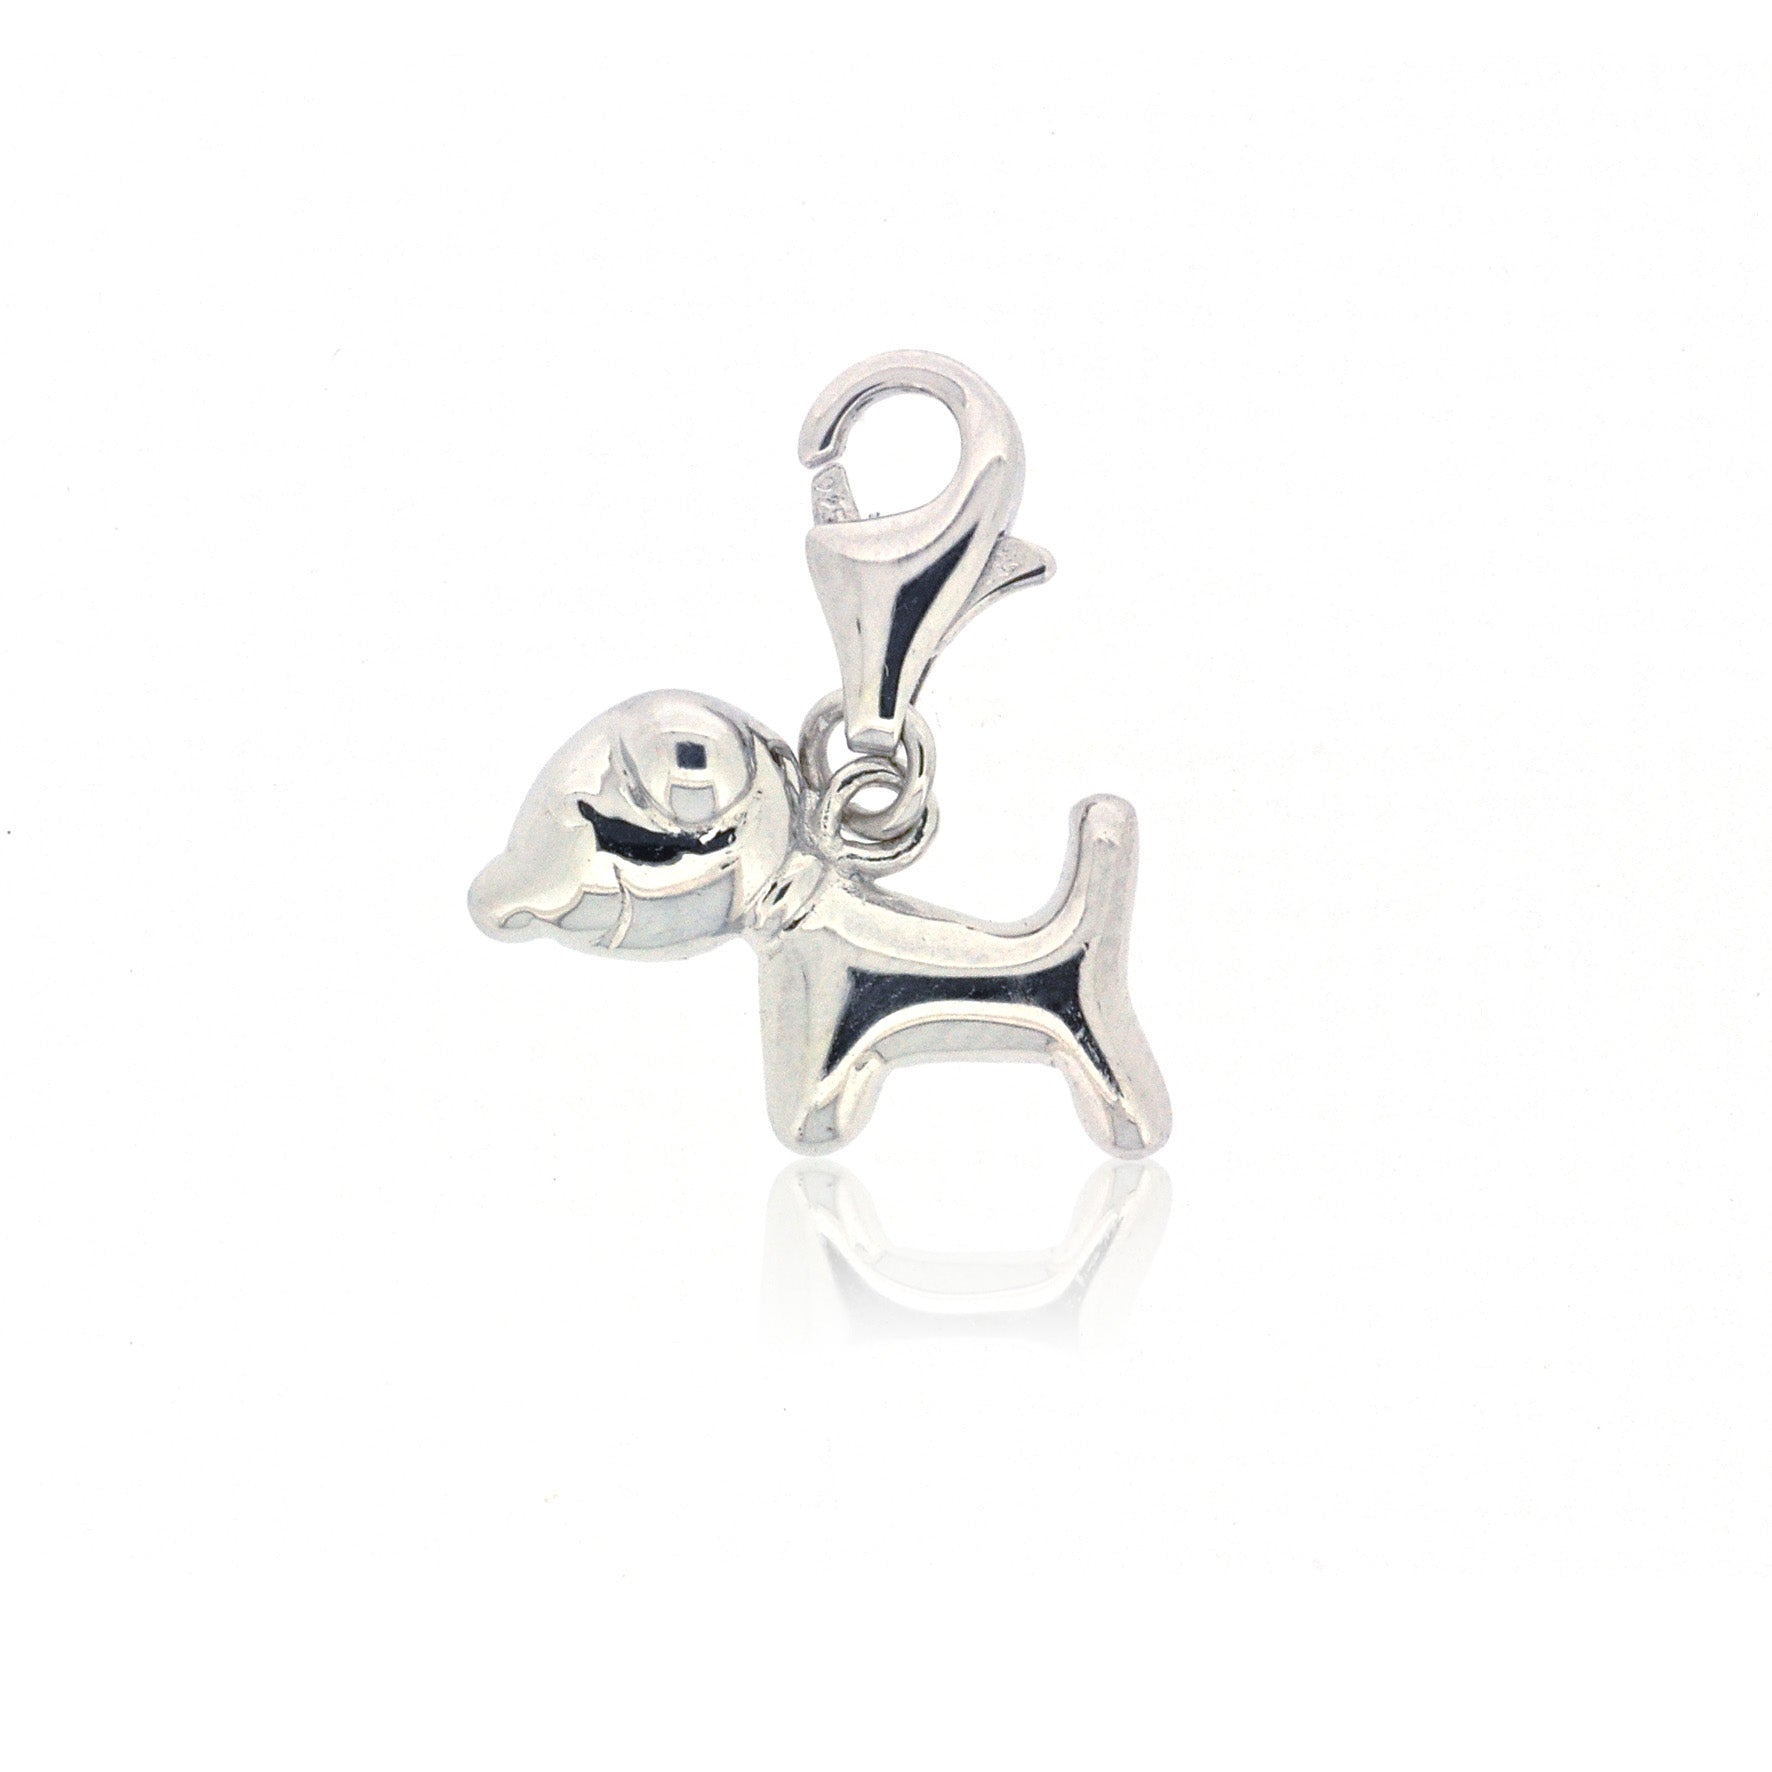 Mimi Too Character Bracelet  Charms - Sterling Silver - puppy